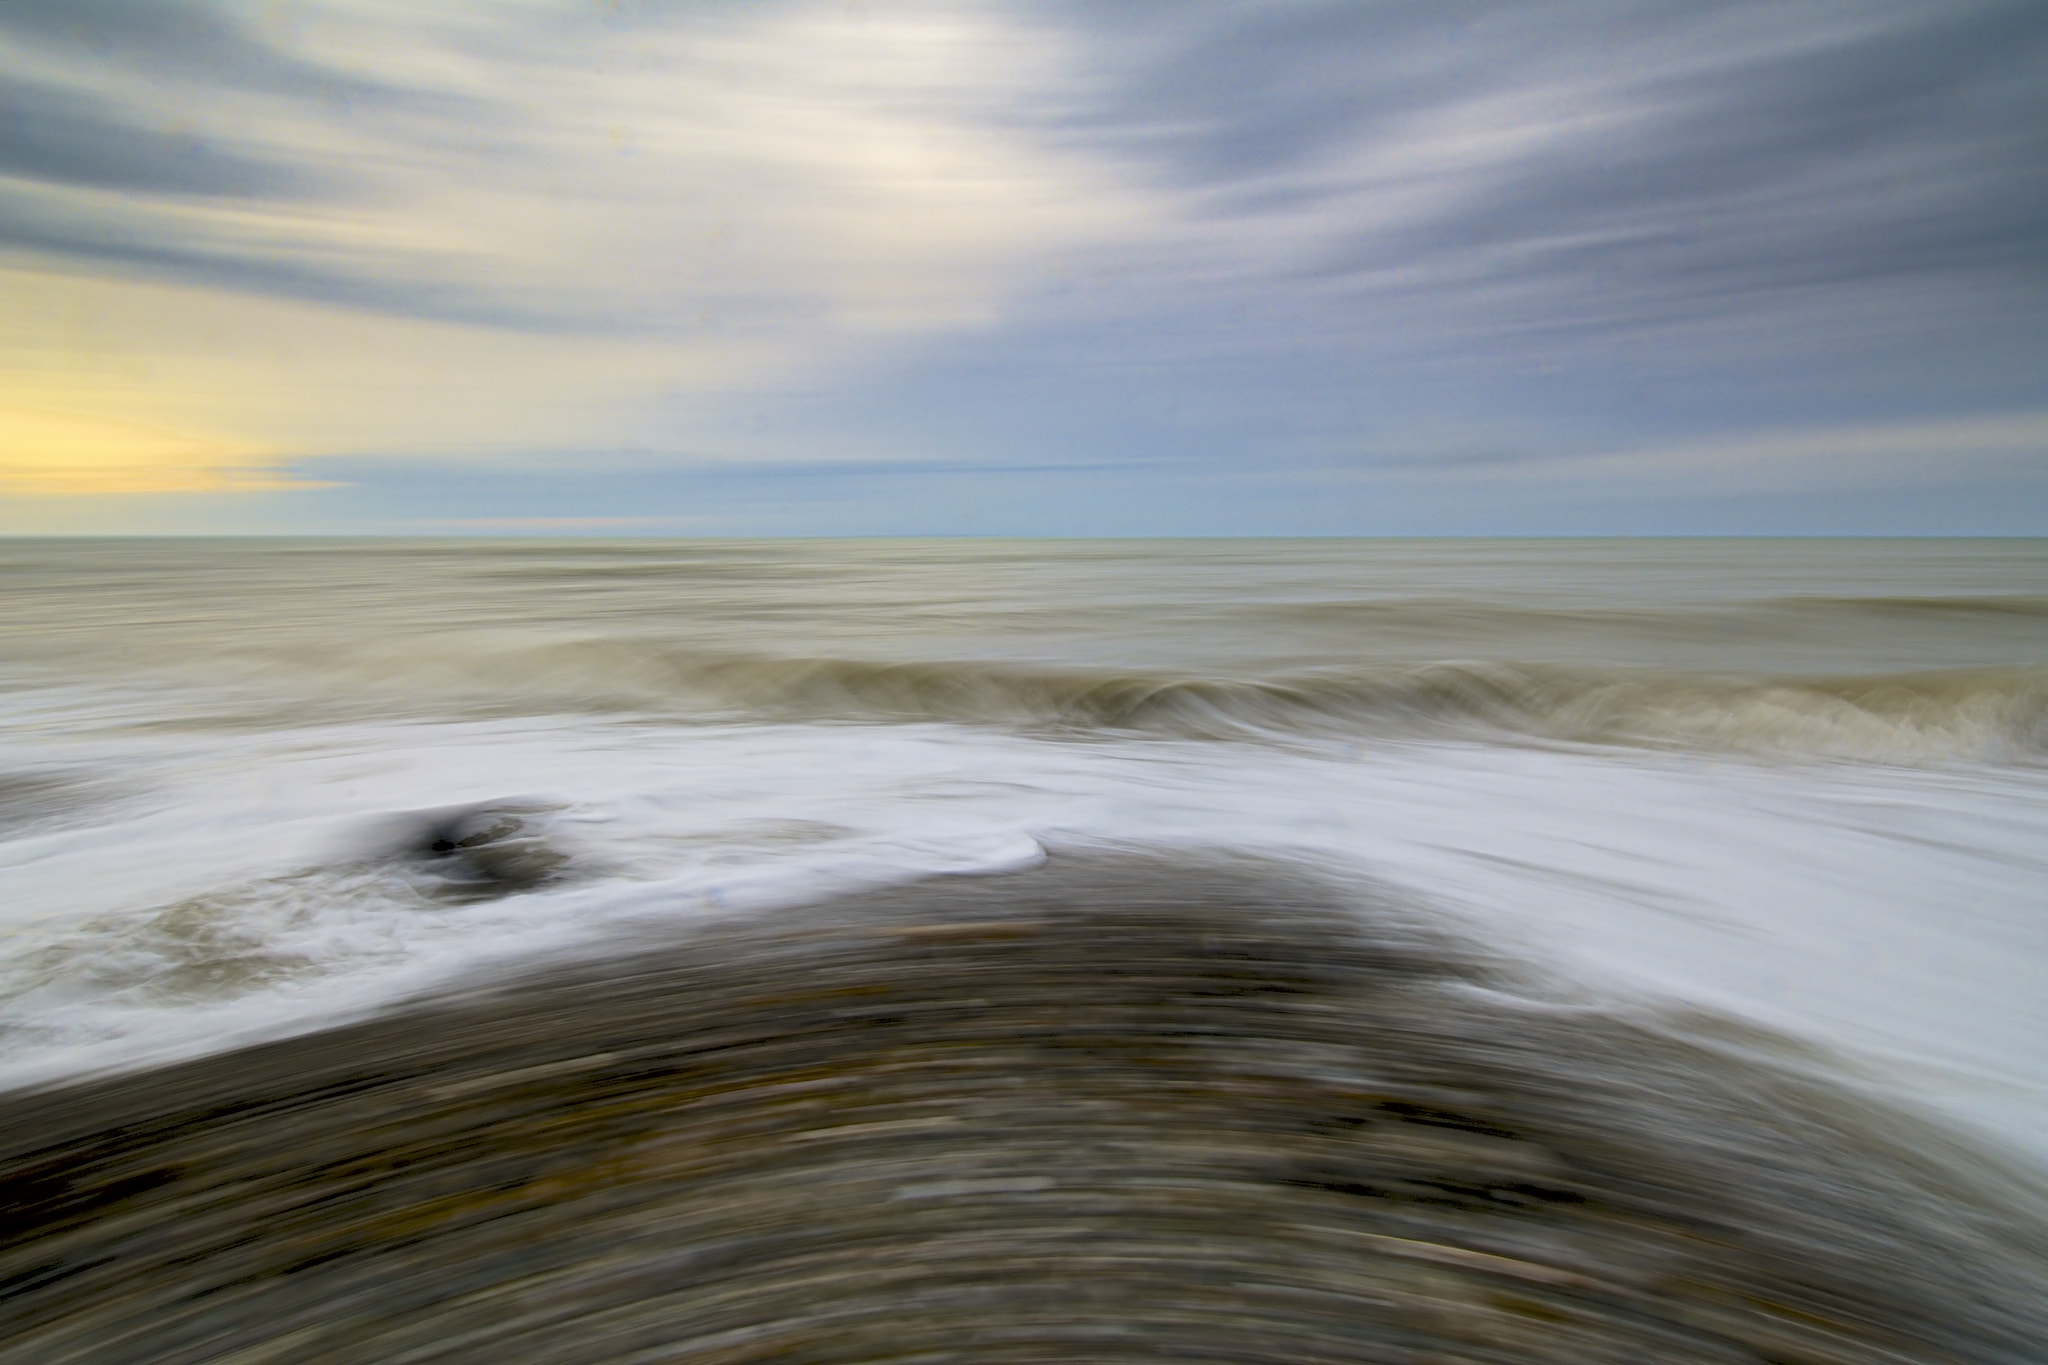 Photograph 'Surreal sea' by John Barker on 500px